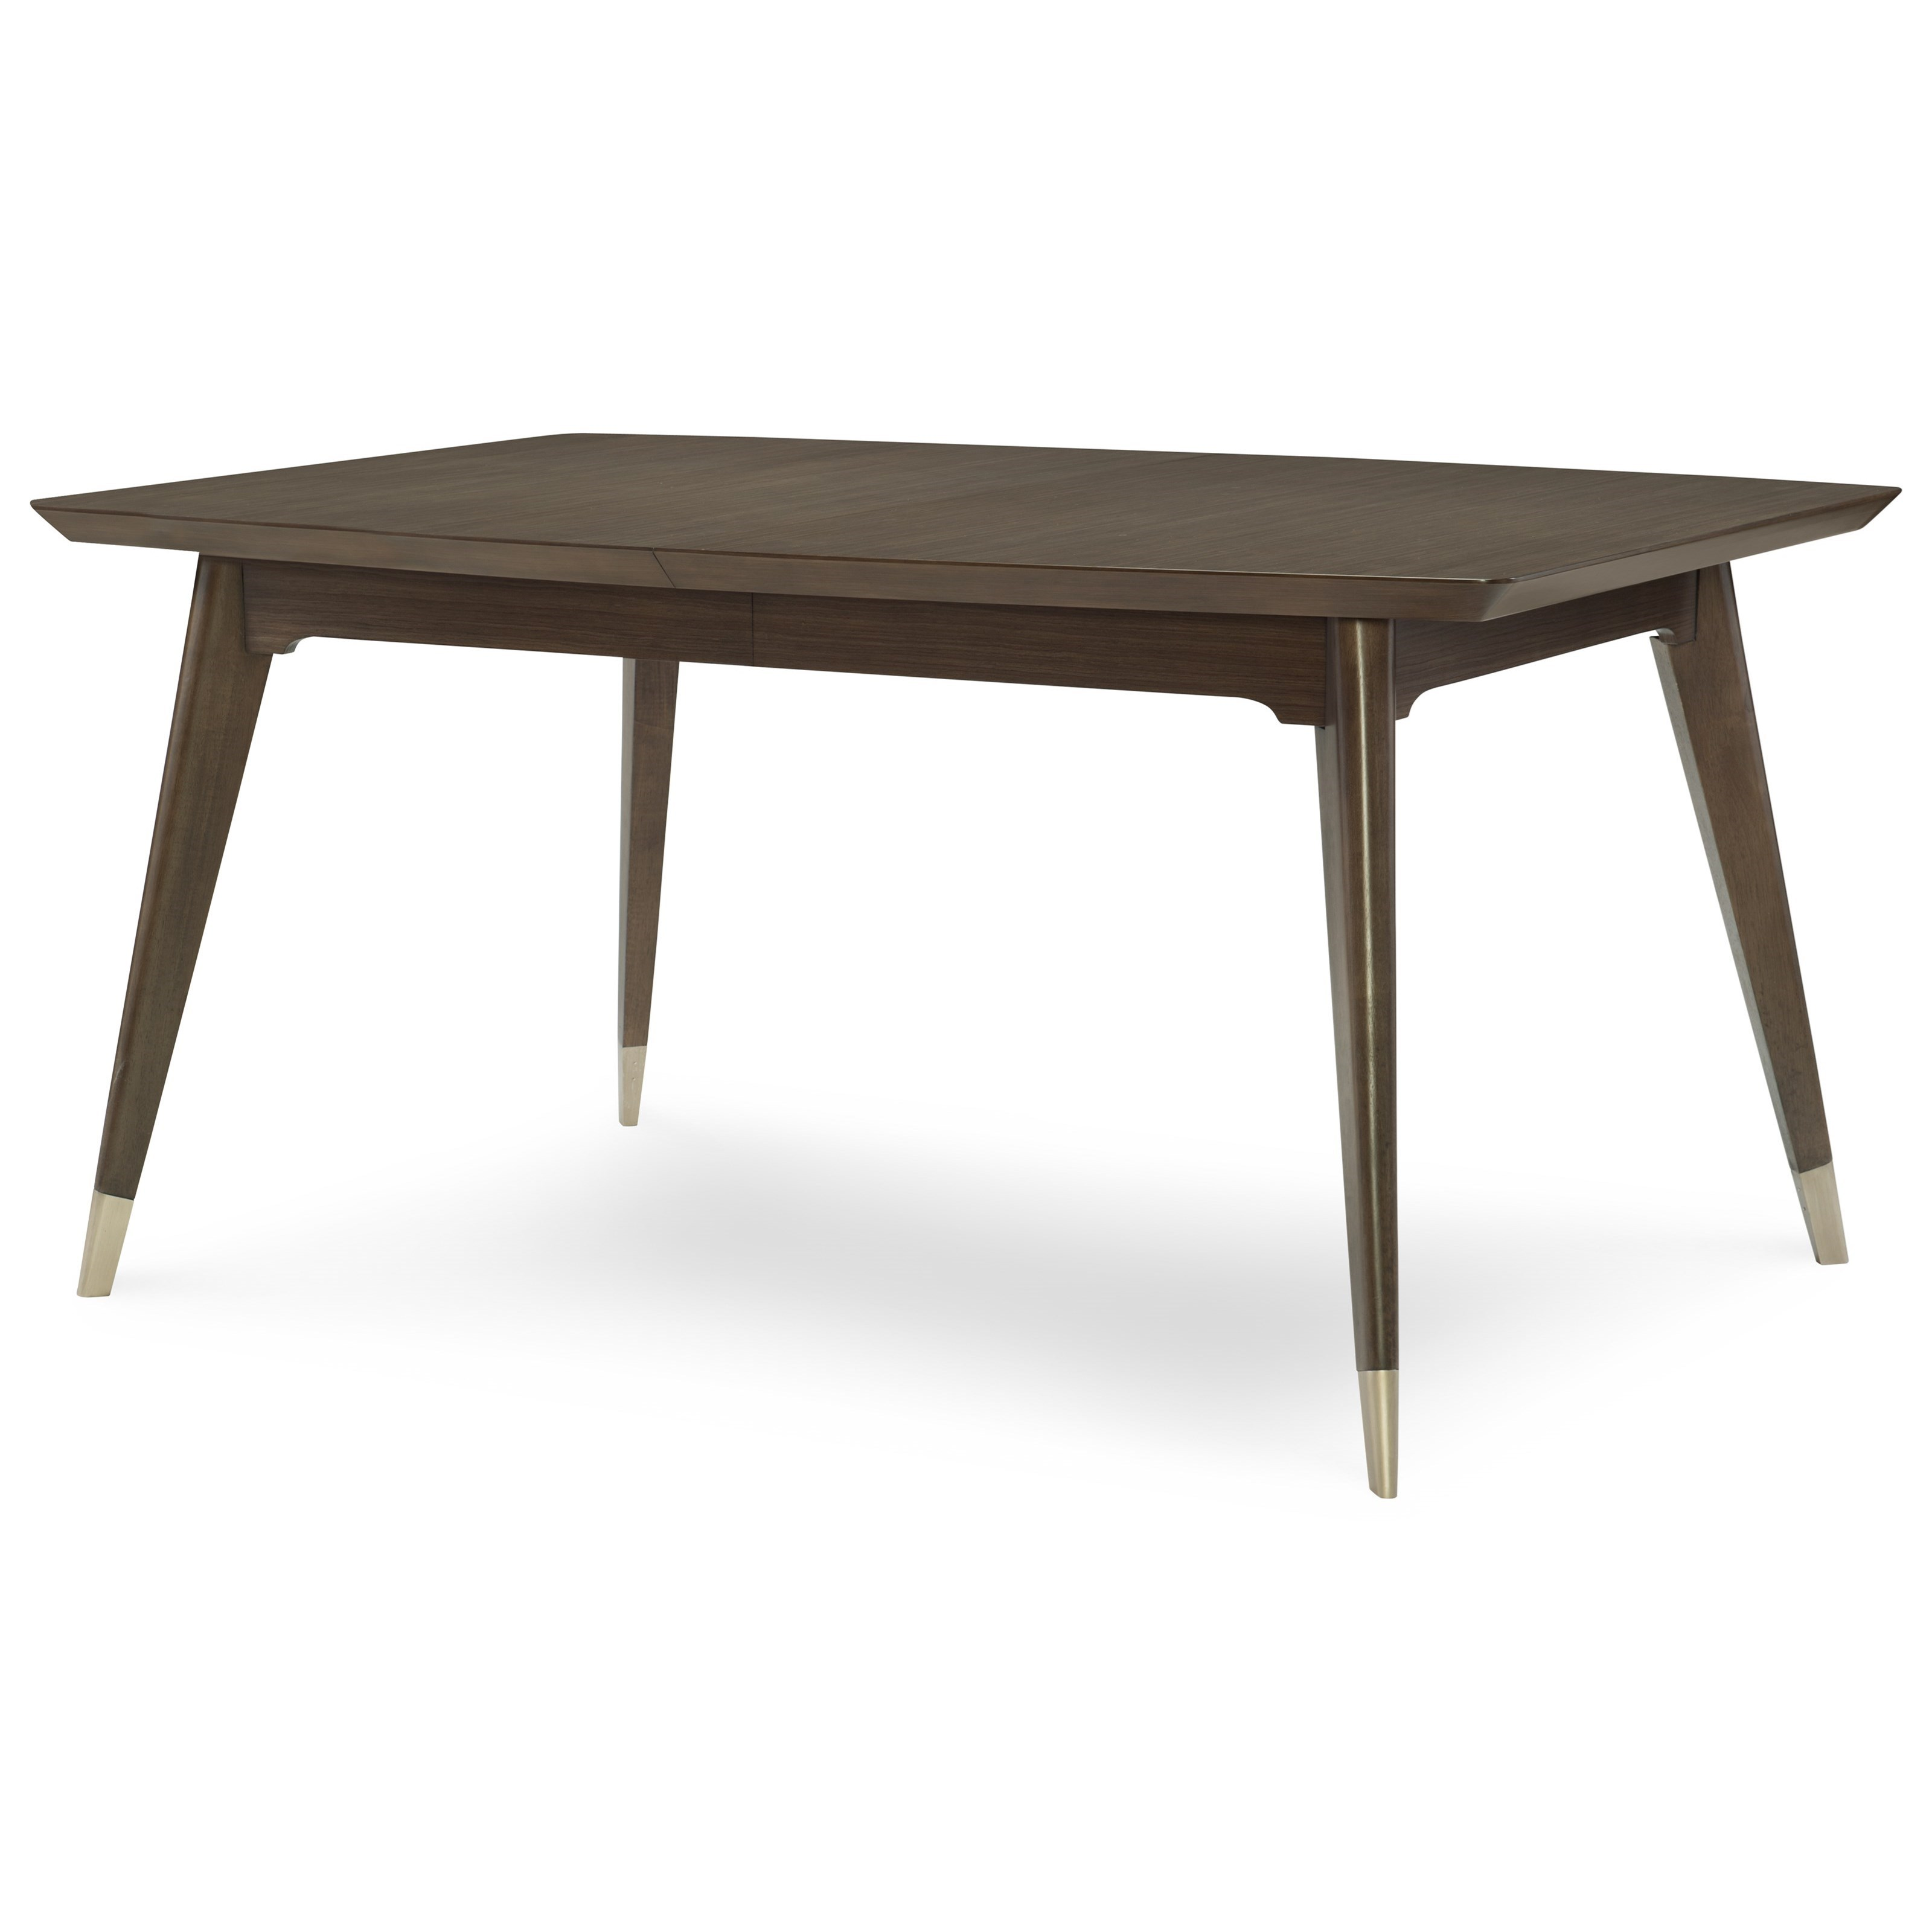 Rachael ray home soho mid century modern rectangular table for Rectangular dining room tables with leaves